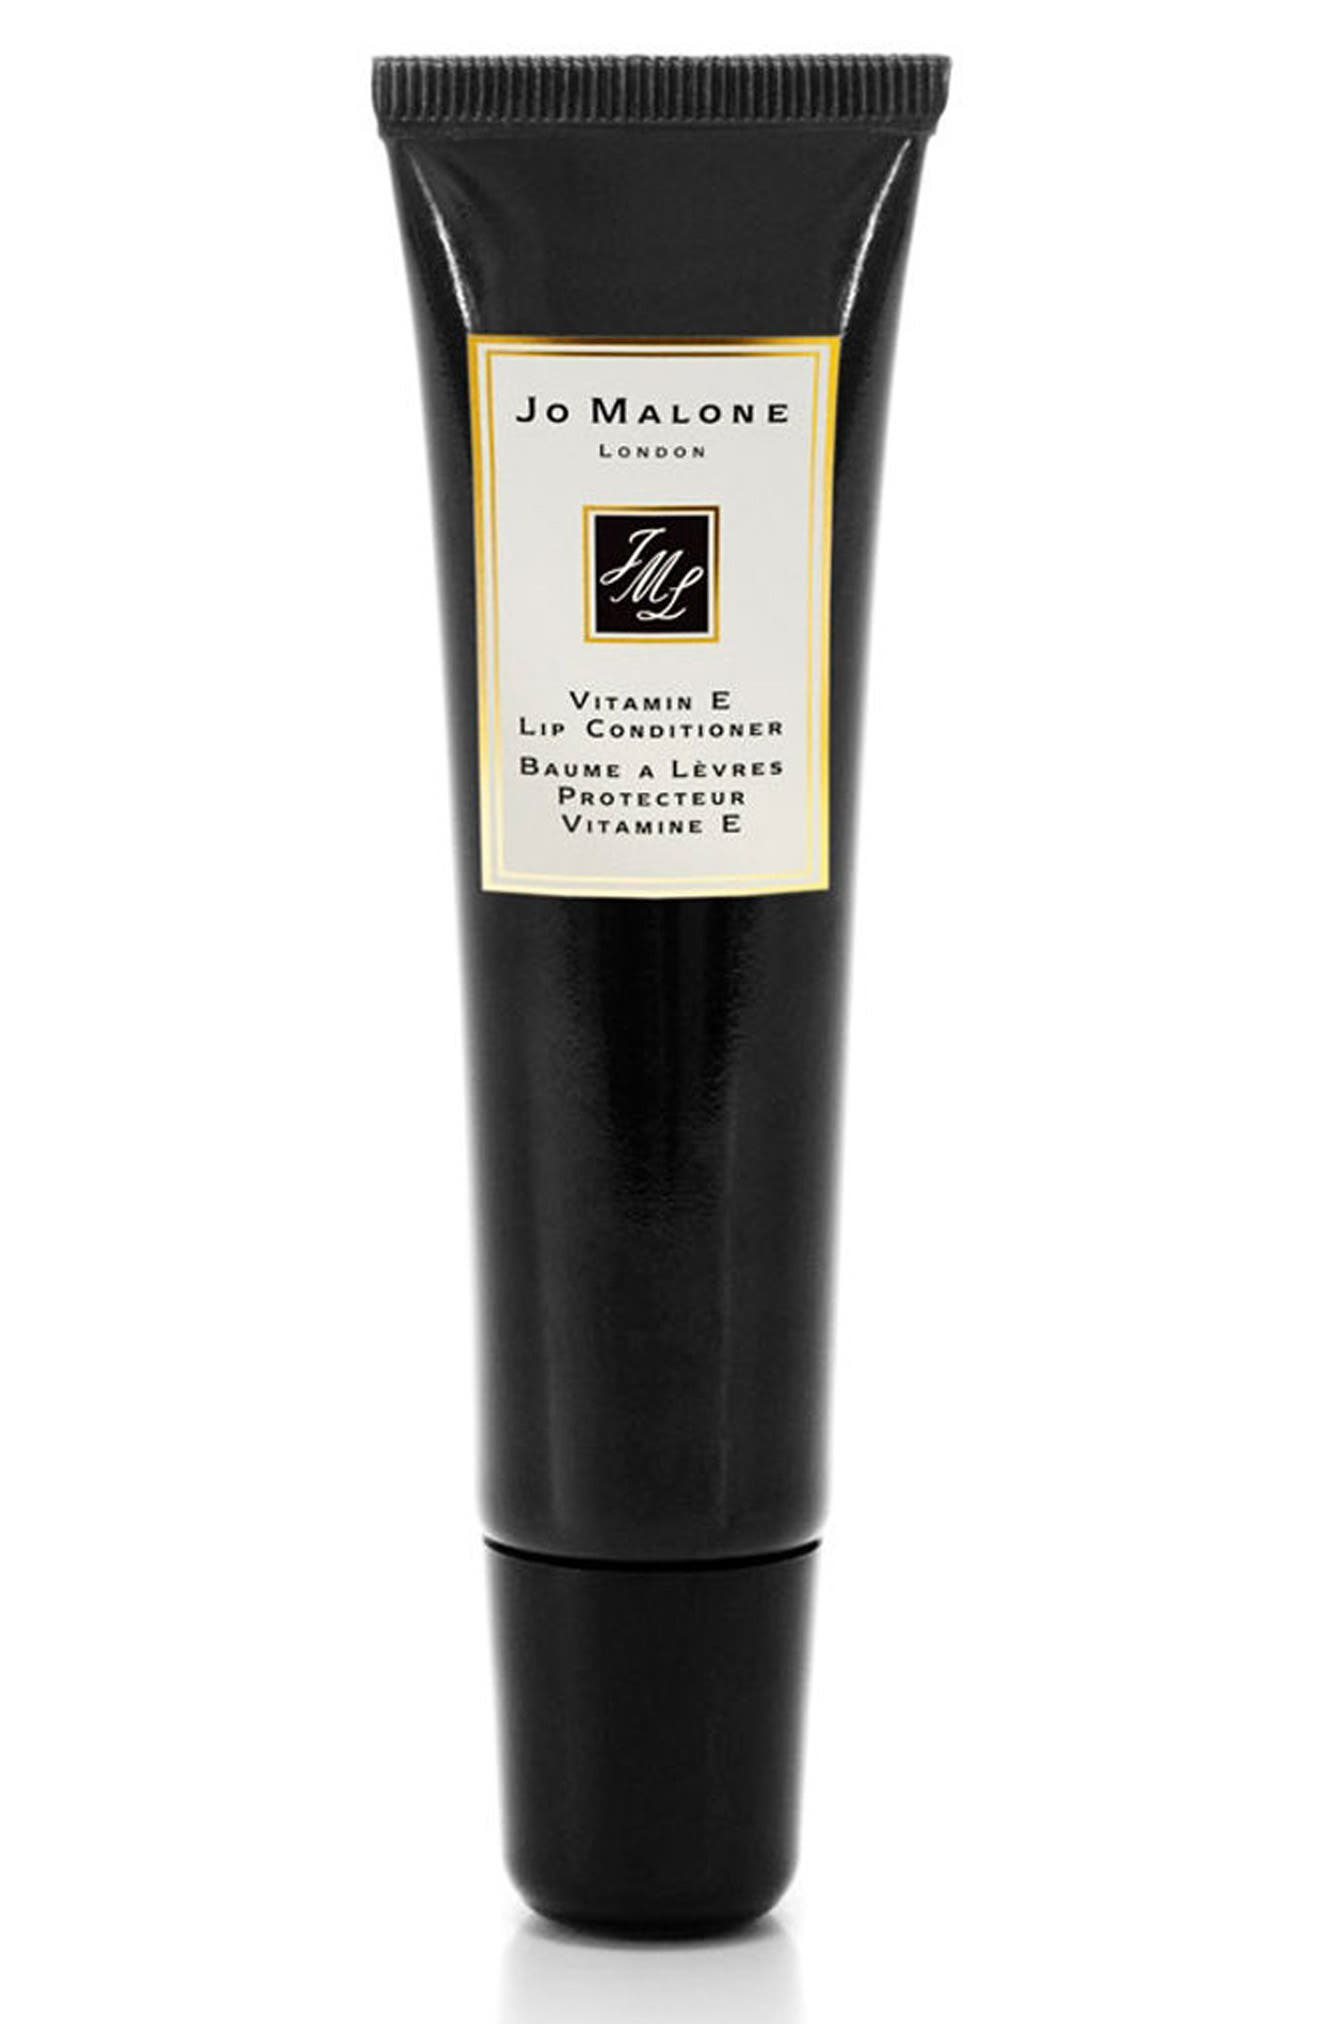 Jo Malone London™ 'Vitamin E' Lip Conditioner